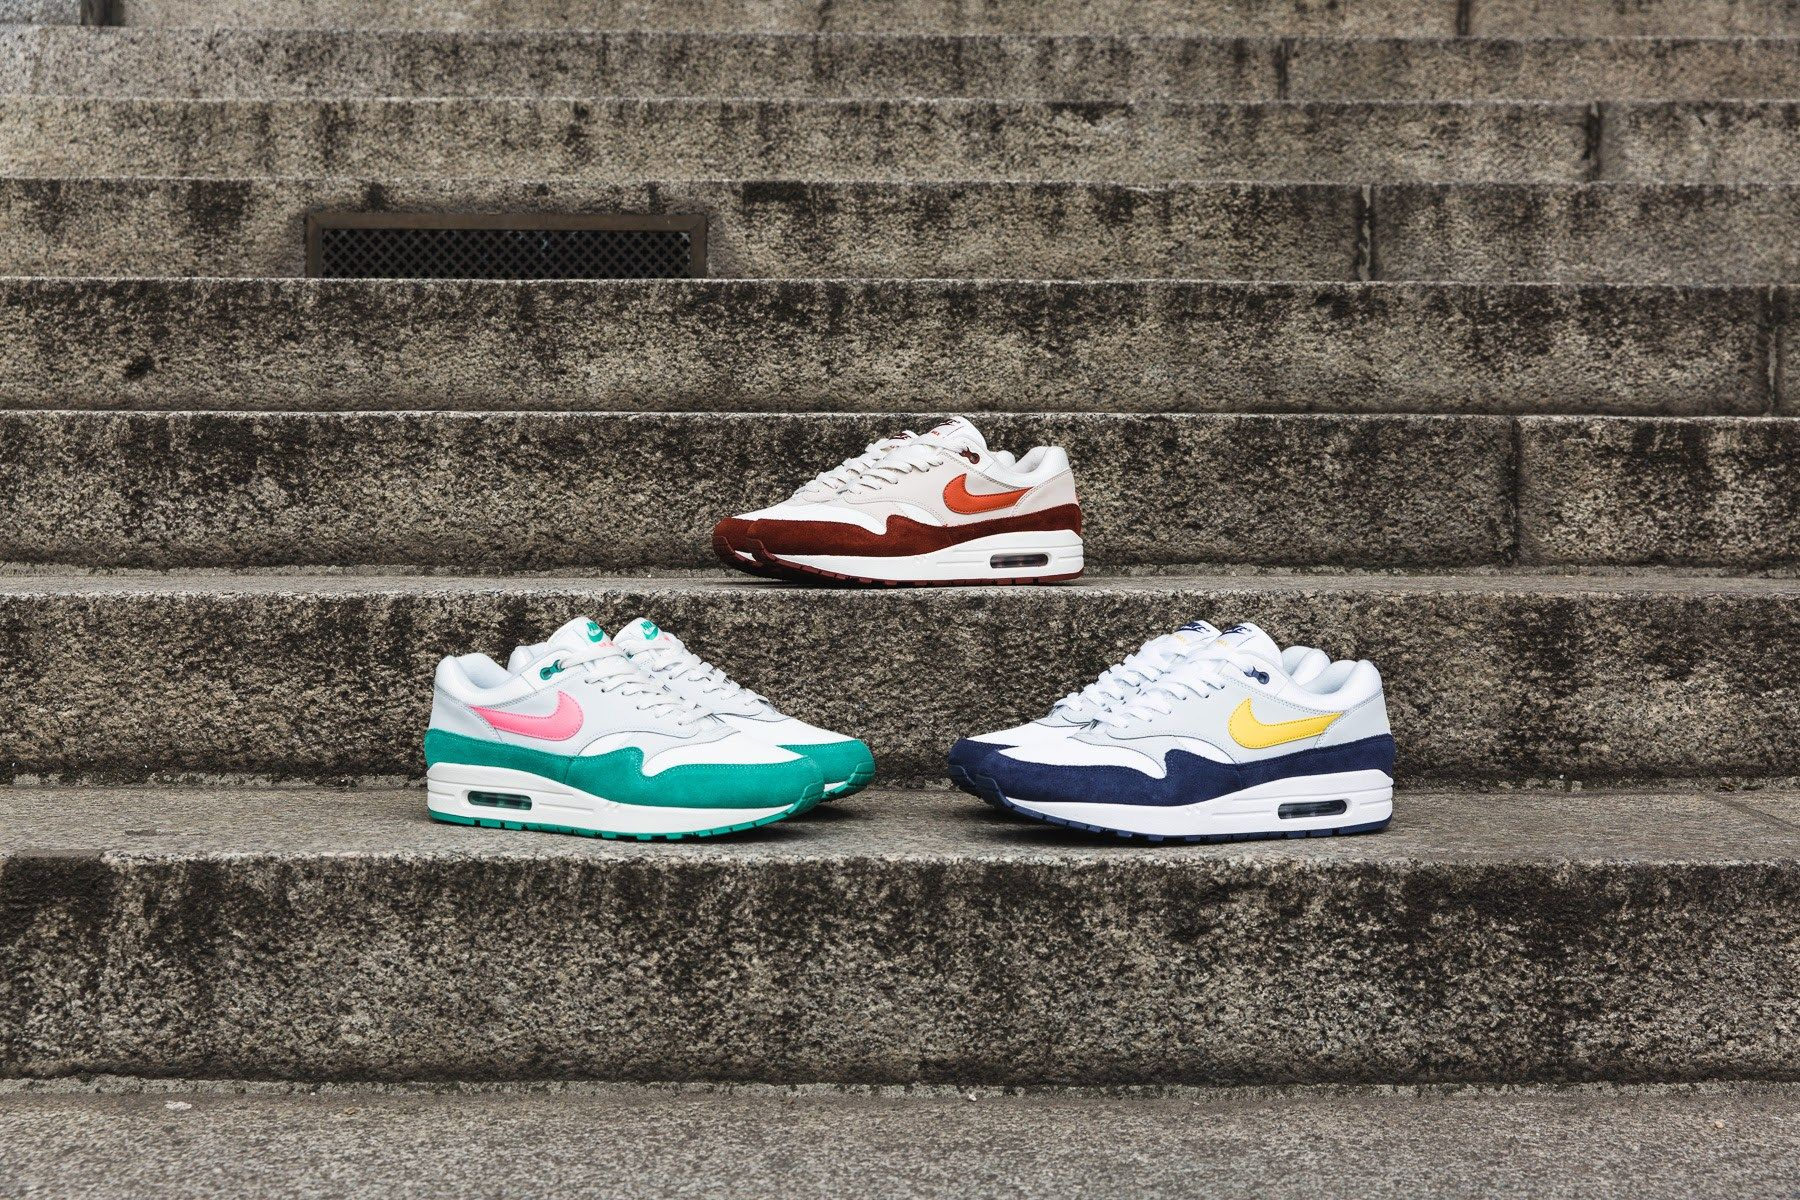 Nike Sportswear Dropping Four Air Max 1 Colorways in Europe to Start May -  EU Kicks